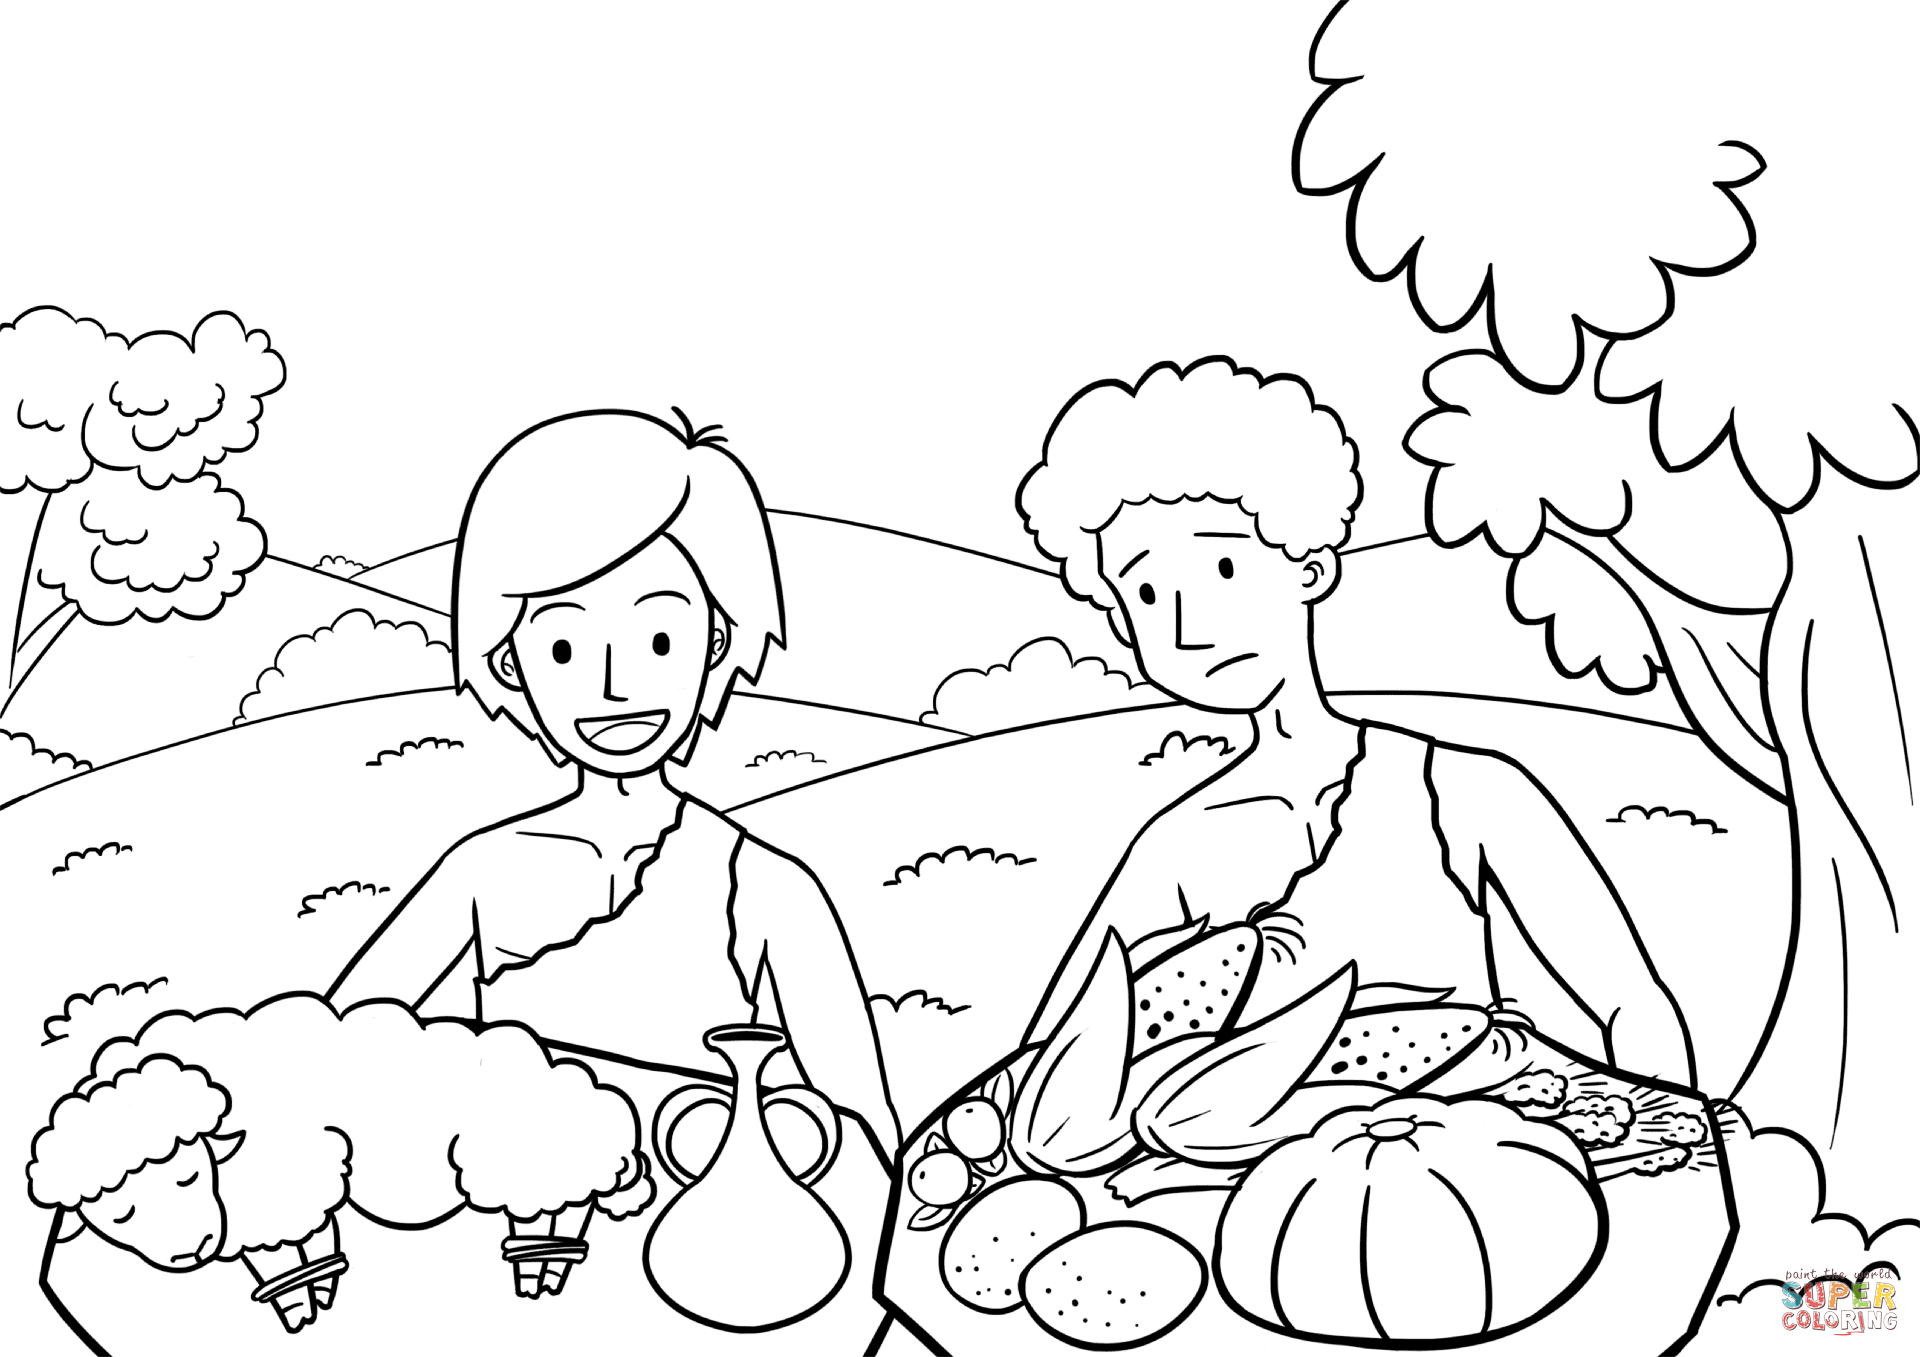 Cain And Abel The Way Of Sacrifice Coloring Page